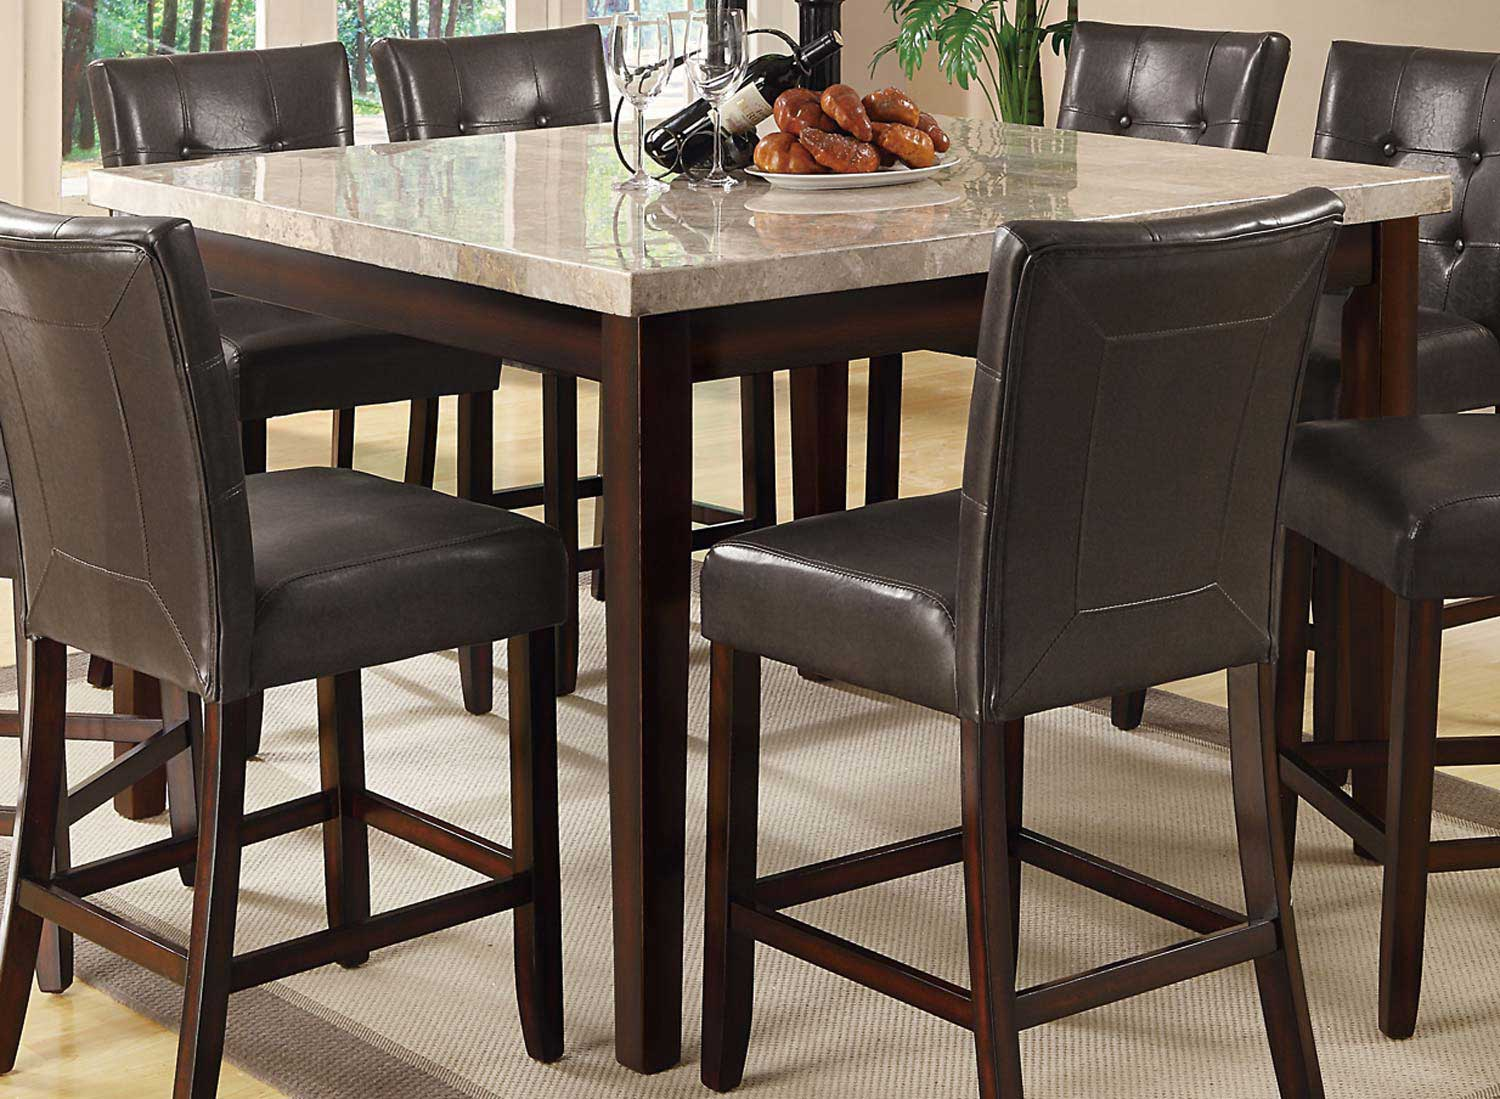 Dining Table Light Height: Coaster Milton Square Counter Height Dining Set